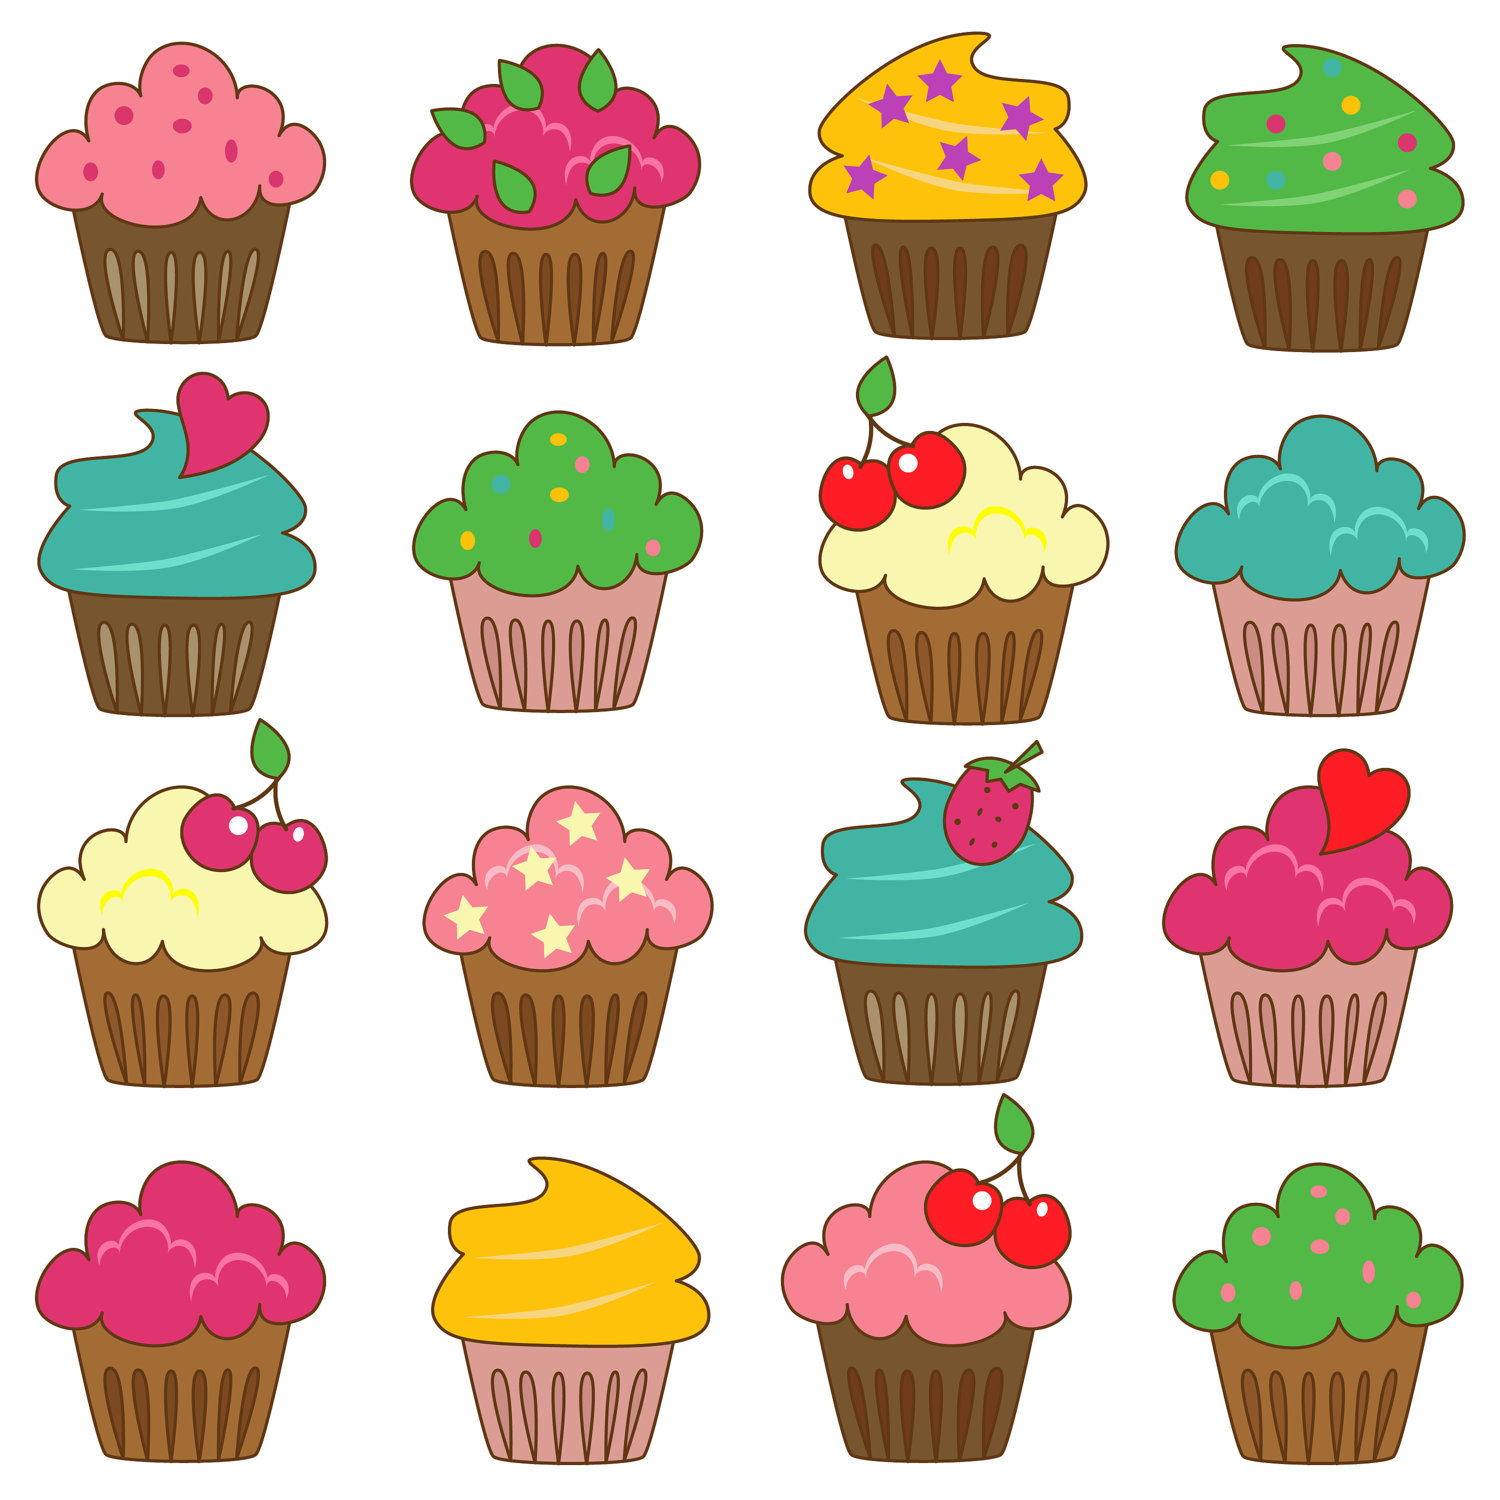 Free Cupcake Cliparts, Download Free Clip Art, Free Clip Art On - Free Printable Cupcake Clipart